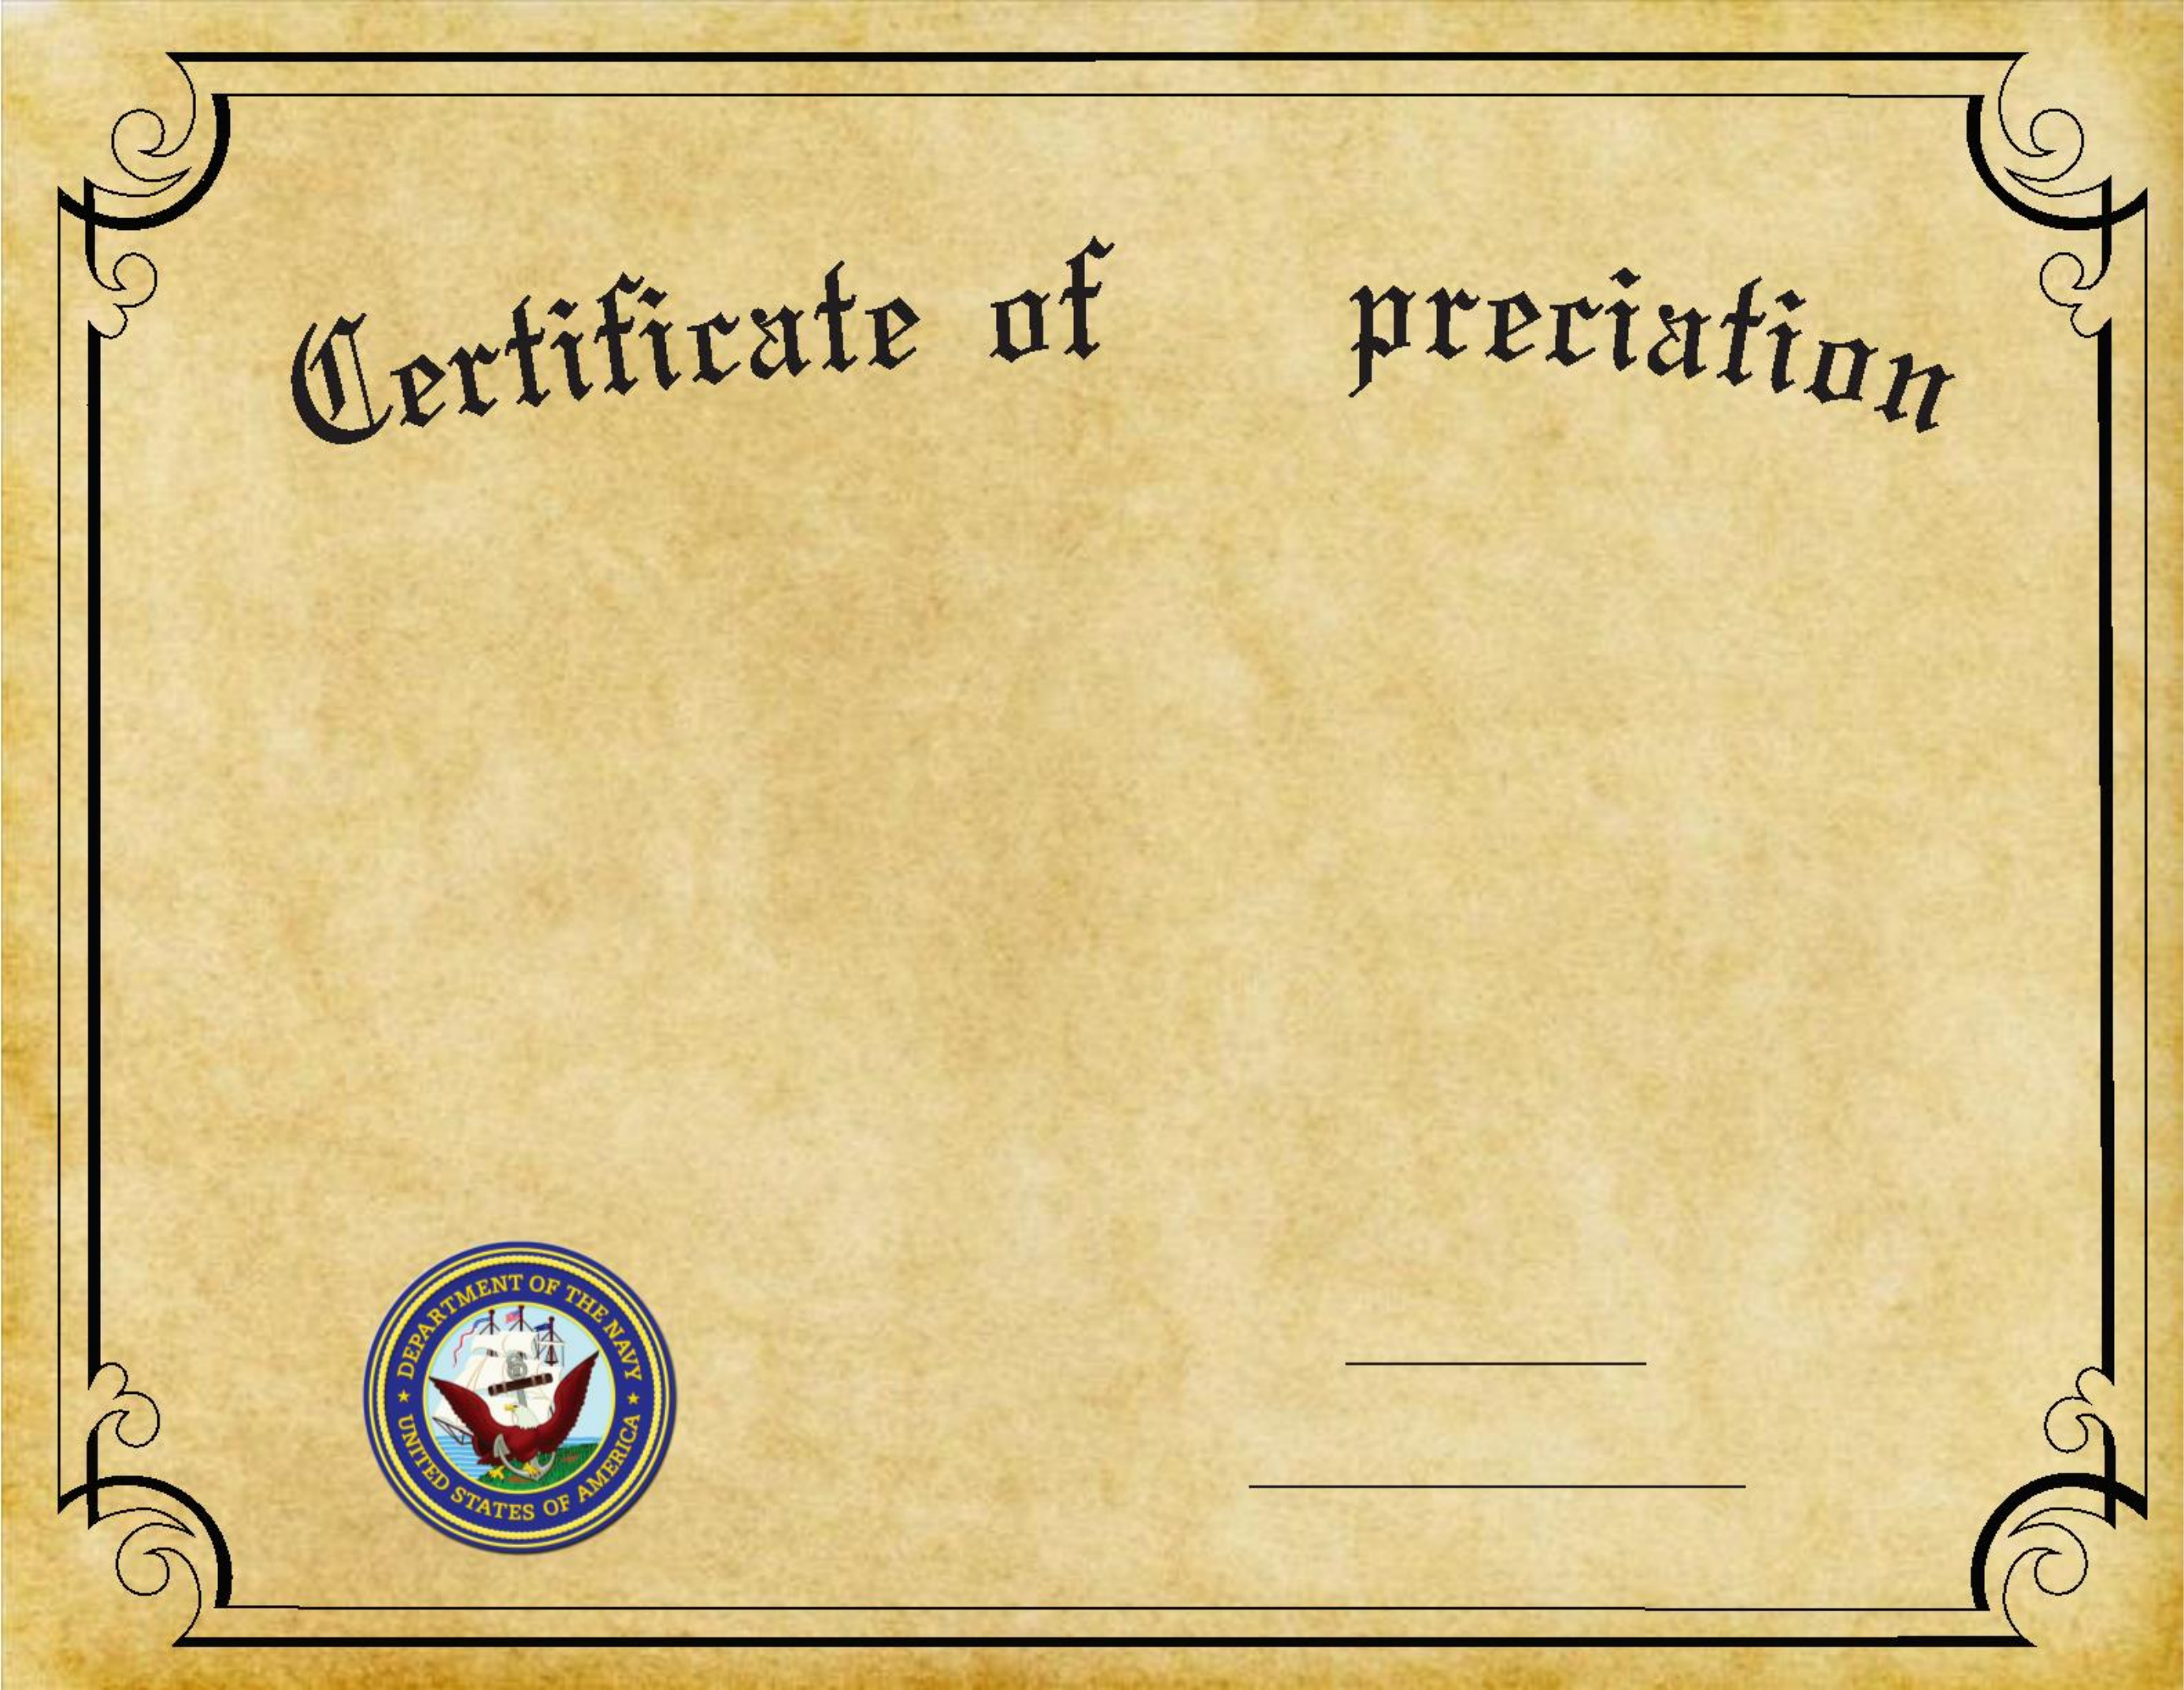 Certificate of appreciation templates free download certificate of certificate of appreciation templates free download certificate of appreciation example free download 24 yadclub Choice Image